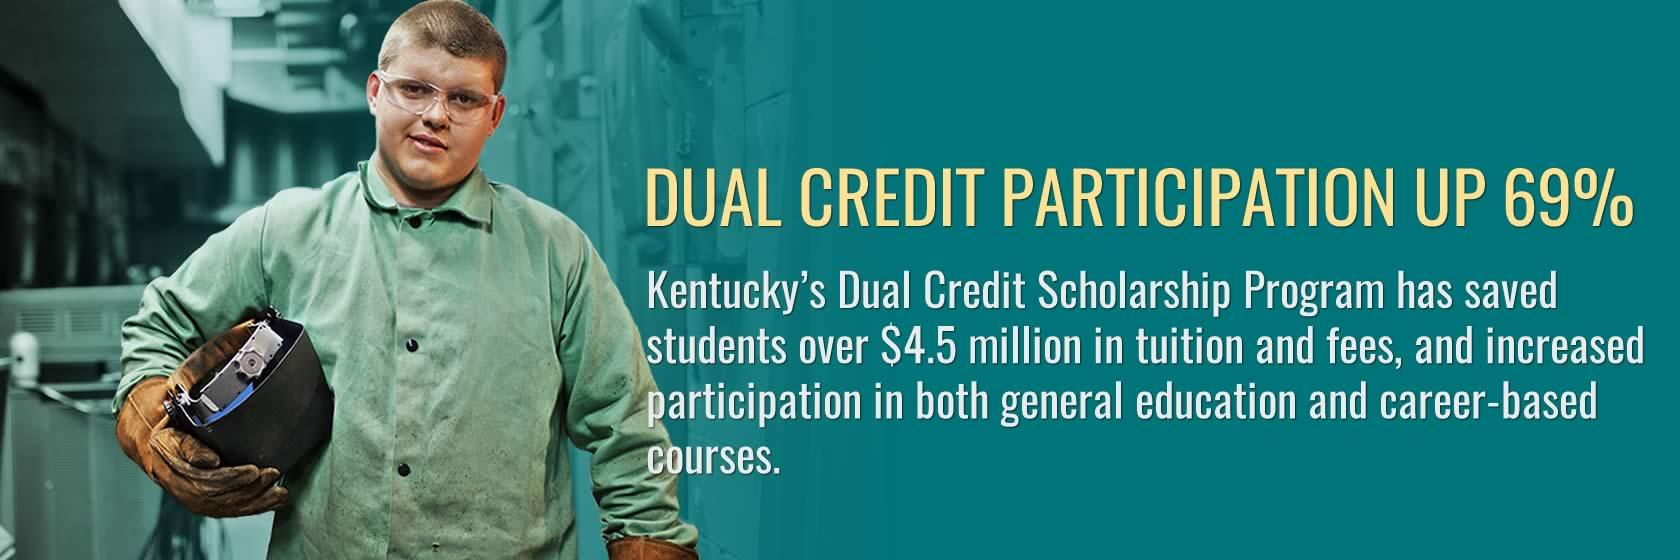 Learn about the success of Kentucky's dual credit program.